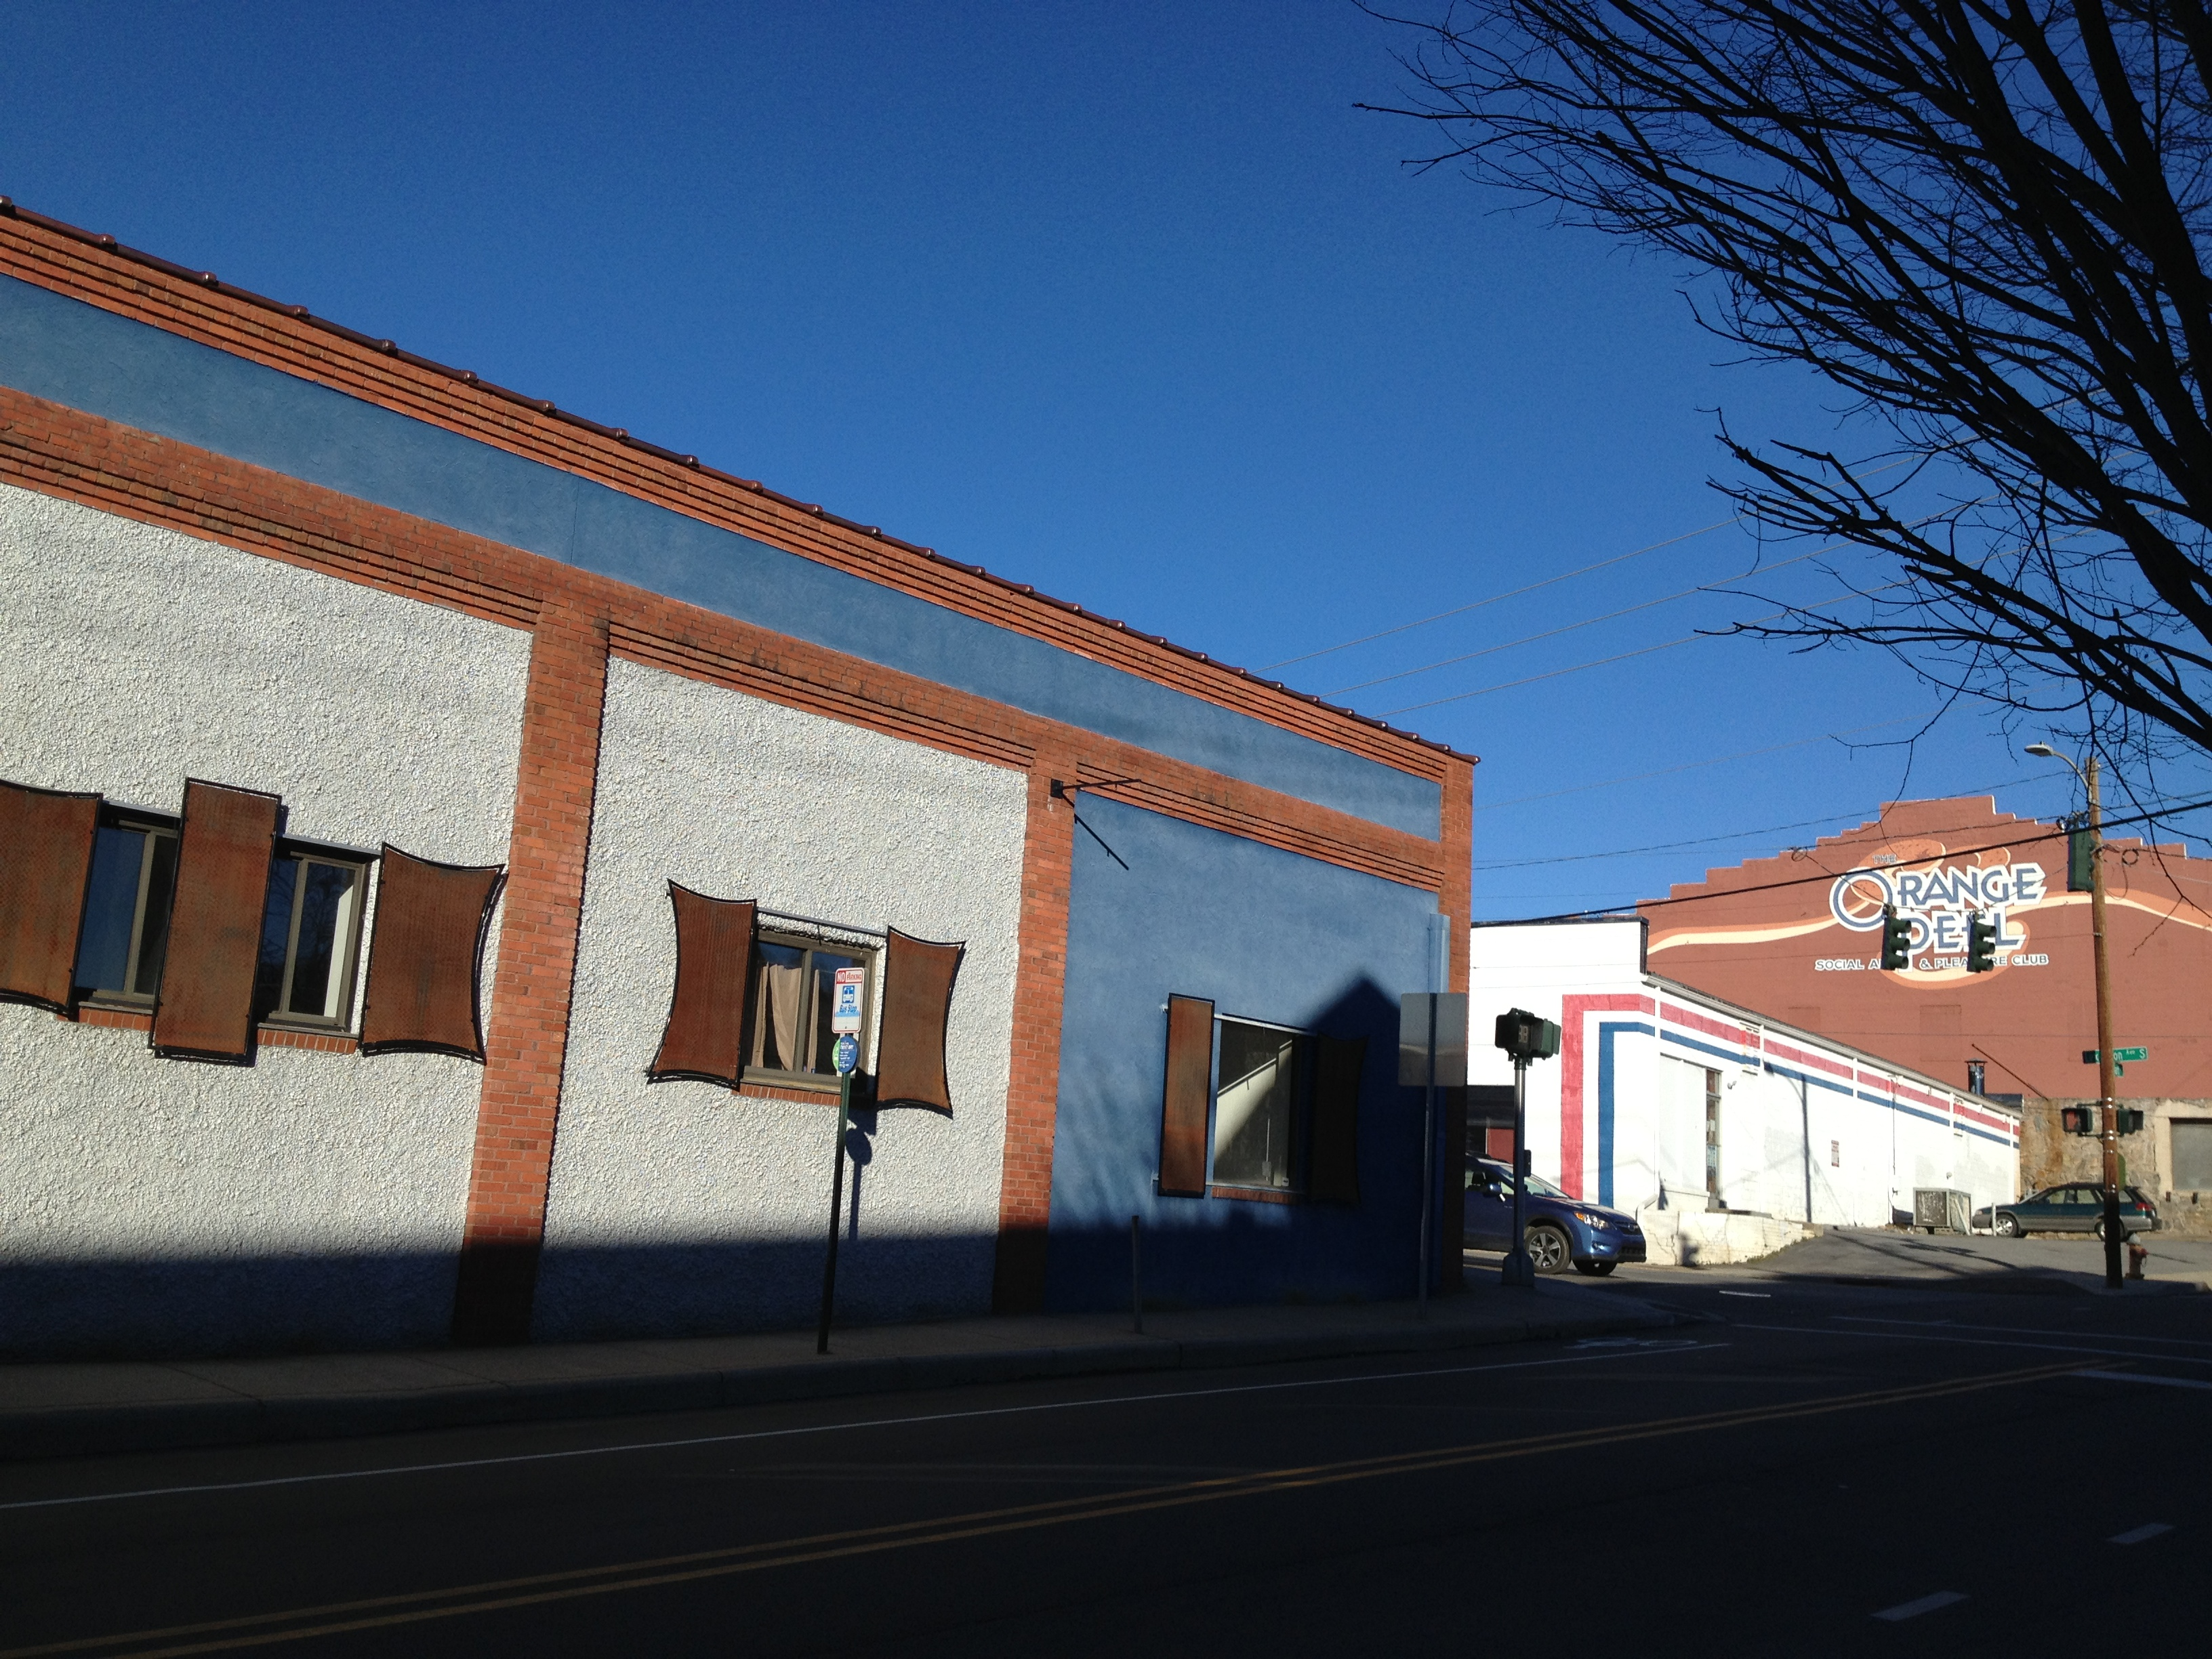 HiveMind Brew House is planned for this building on the left at the corner of South Lexington and Hilliard avenues. The building is the former site of Asheville Music School. It's near Storm rum bar and restaurant, the Orange Peel music venue and Wicked Weed Brewing.